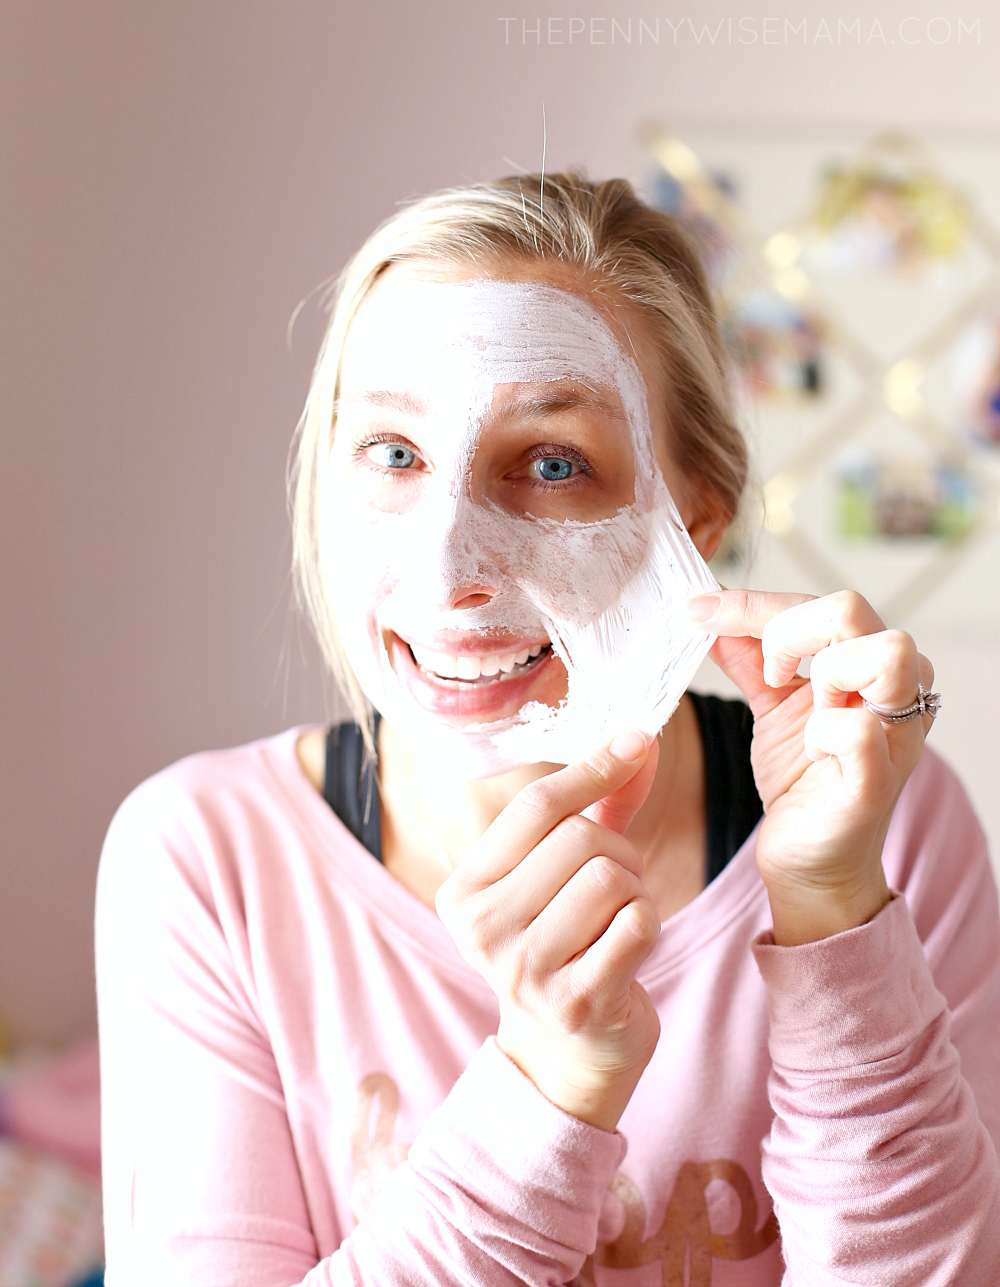 Save on Spa Treatments at Home with 7th Heaven Peel-Off Masks